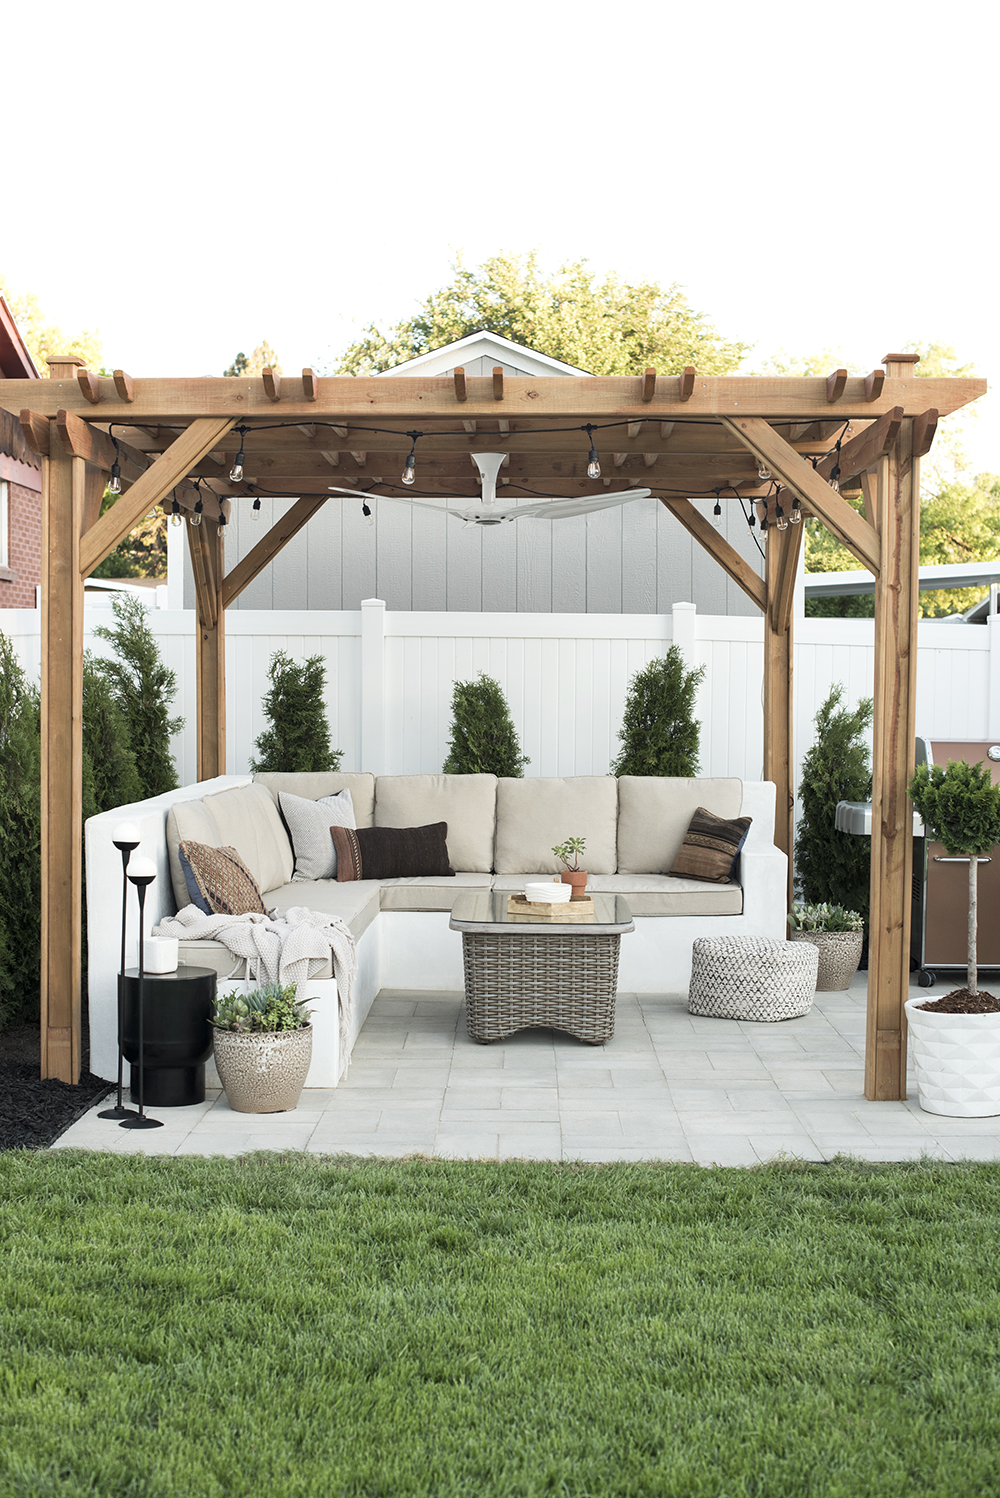 Backyard Budget Breakdown - roomfortuesday.com